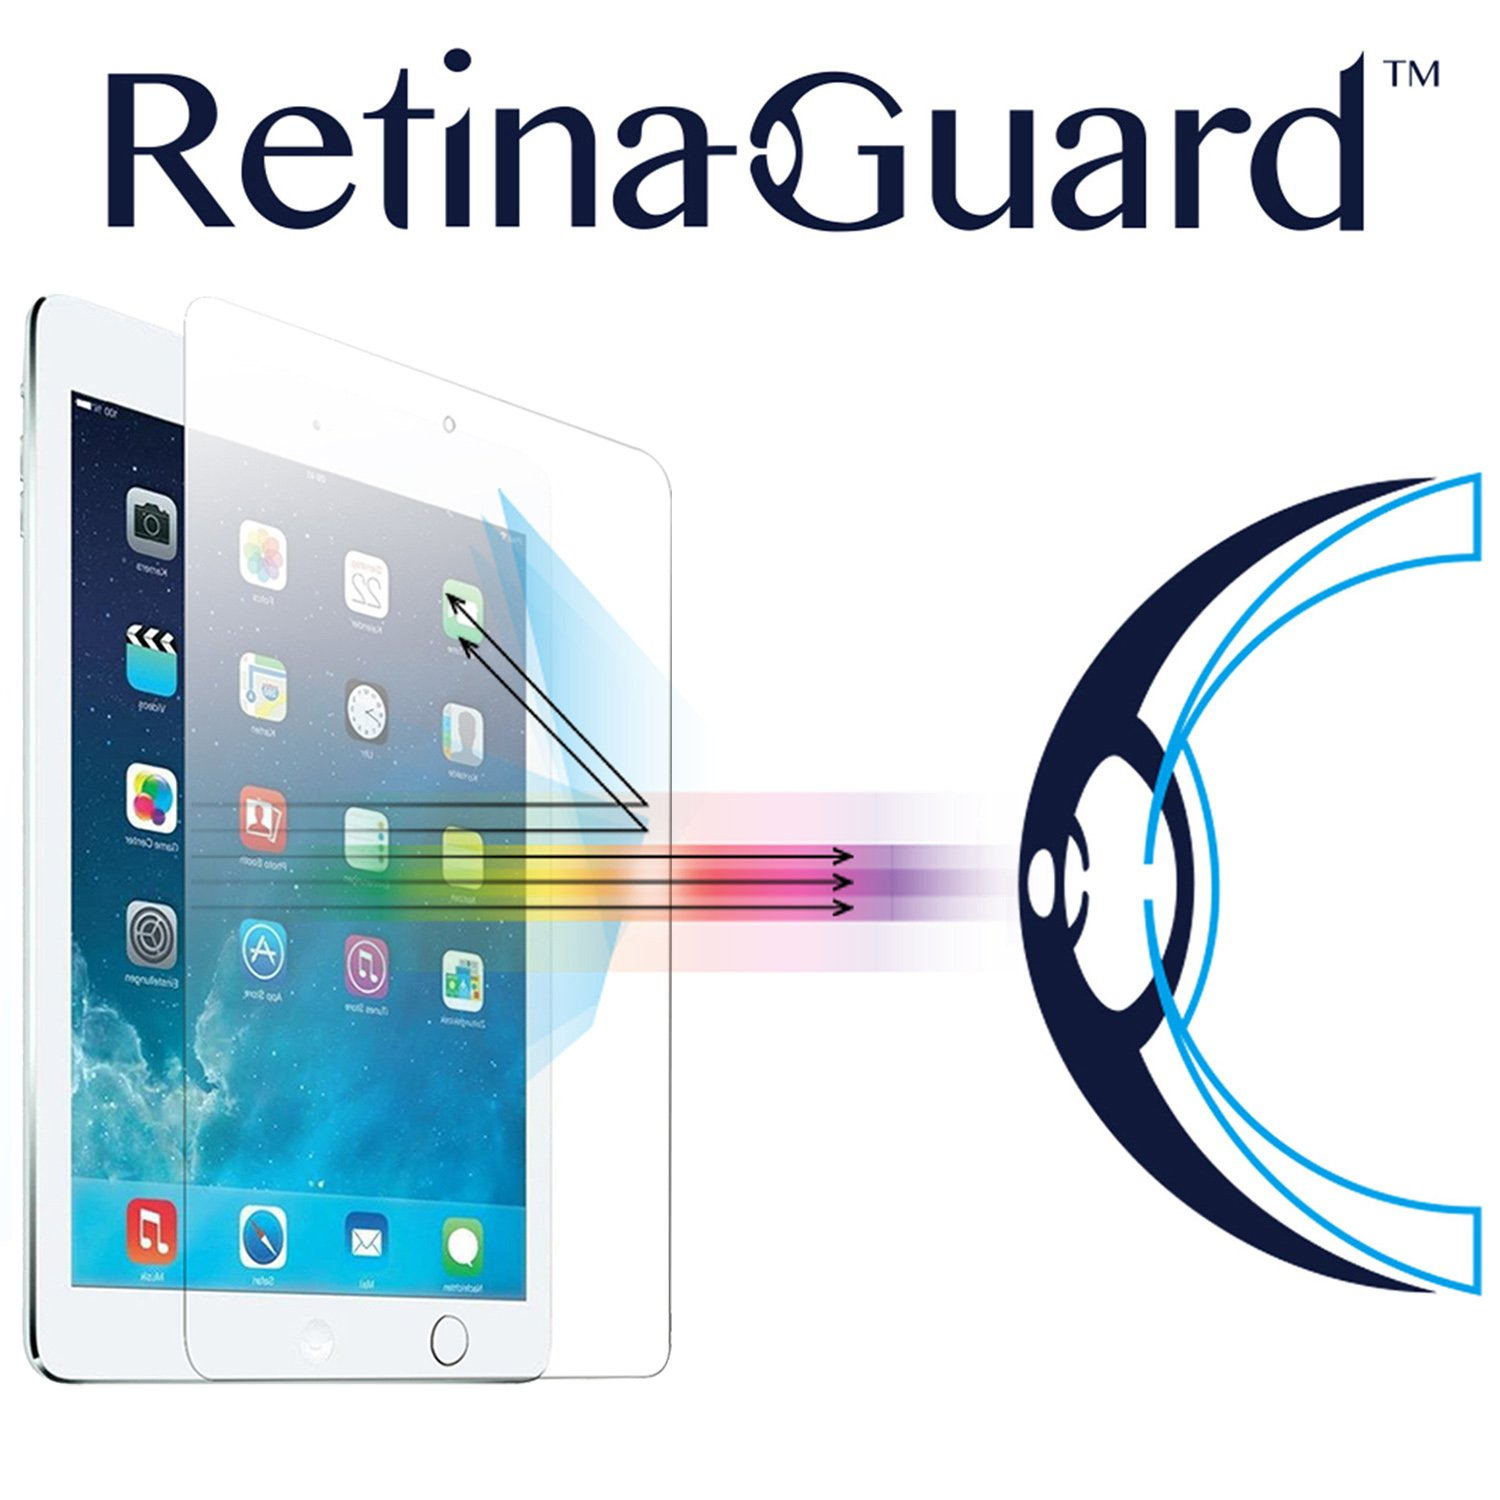 RetinaGuard Anti-UV, Anti-blue Light Tempered Glass Screen protector for 2018 iPad /2017 iPad /iPad Pro 9.7 /iPad Air2 /iPad Air - SGS & Intertek Tested - Blocks Excessive Harmful Blue Light